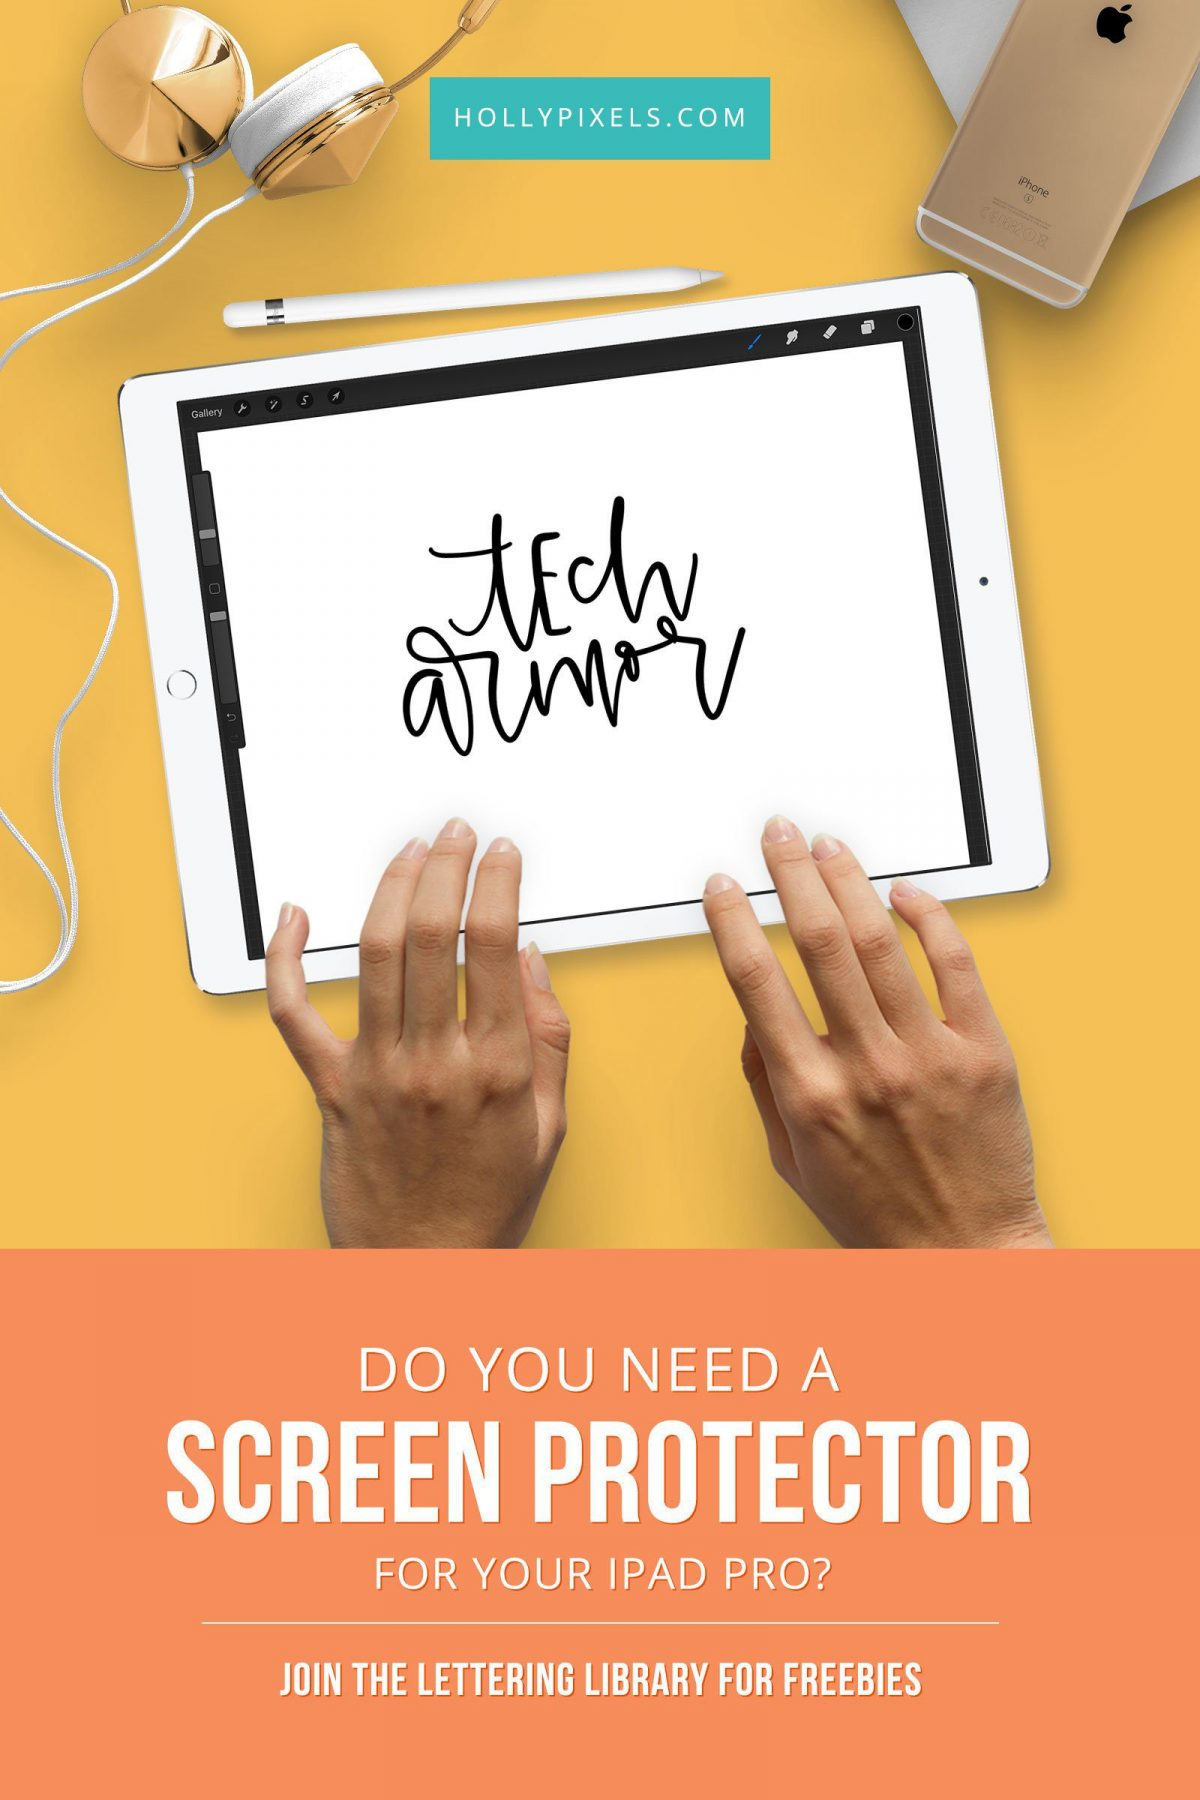 Should You Use a Matte Screen Protector on Your iPad Pro?